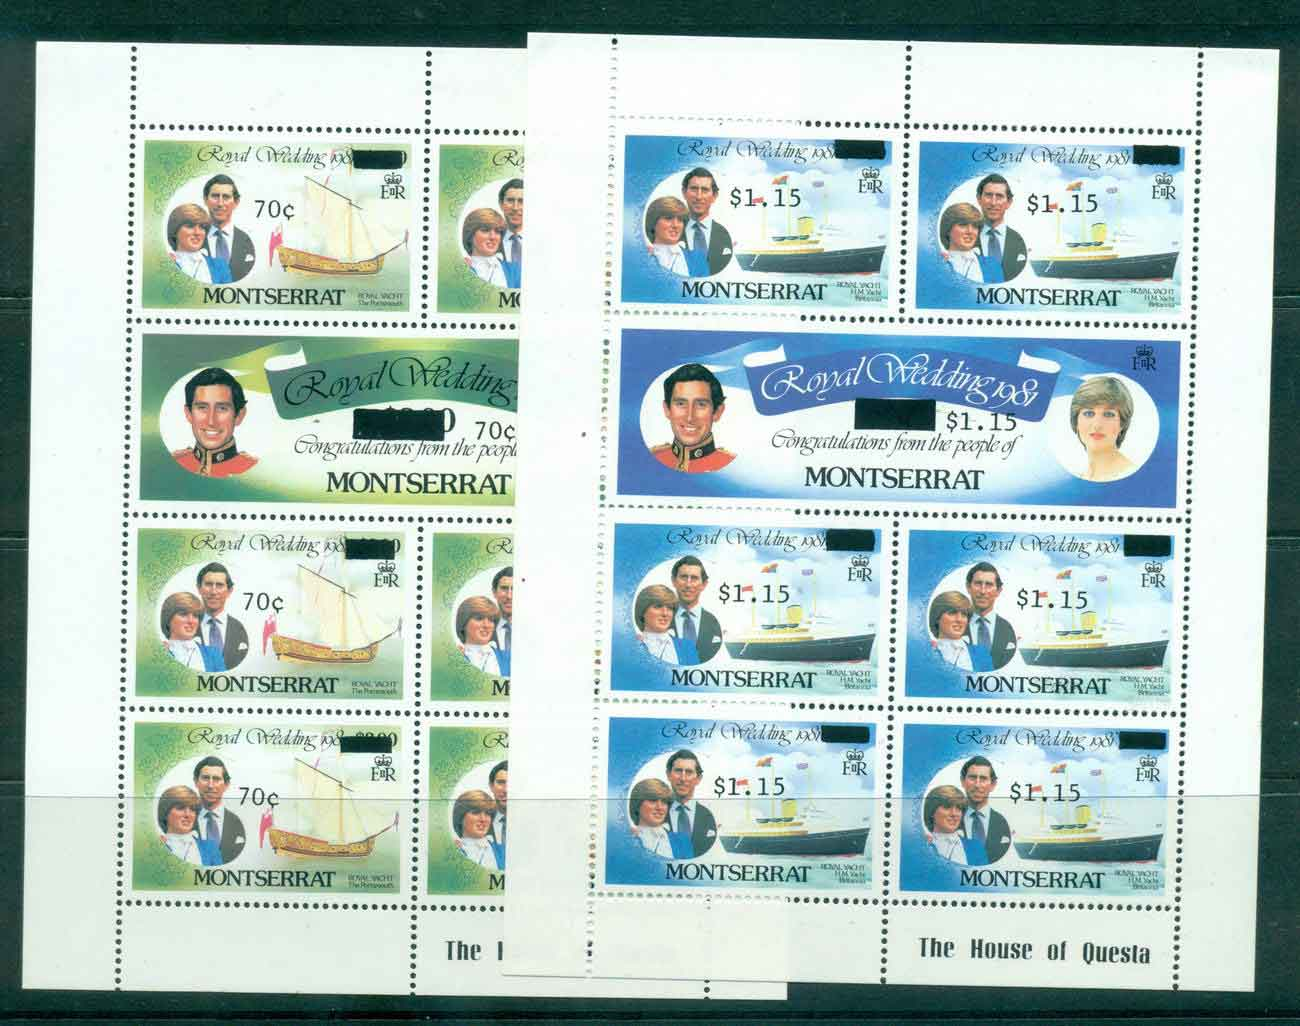 Montserrat 1981 Charles & Diana Wedding Surcharged 2x Sheetlets MUH Lot45112